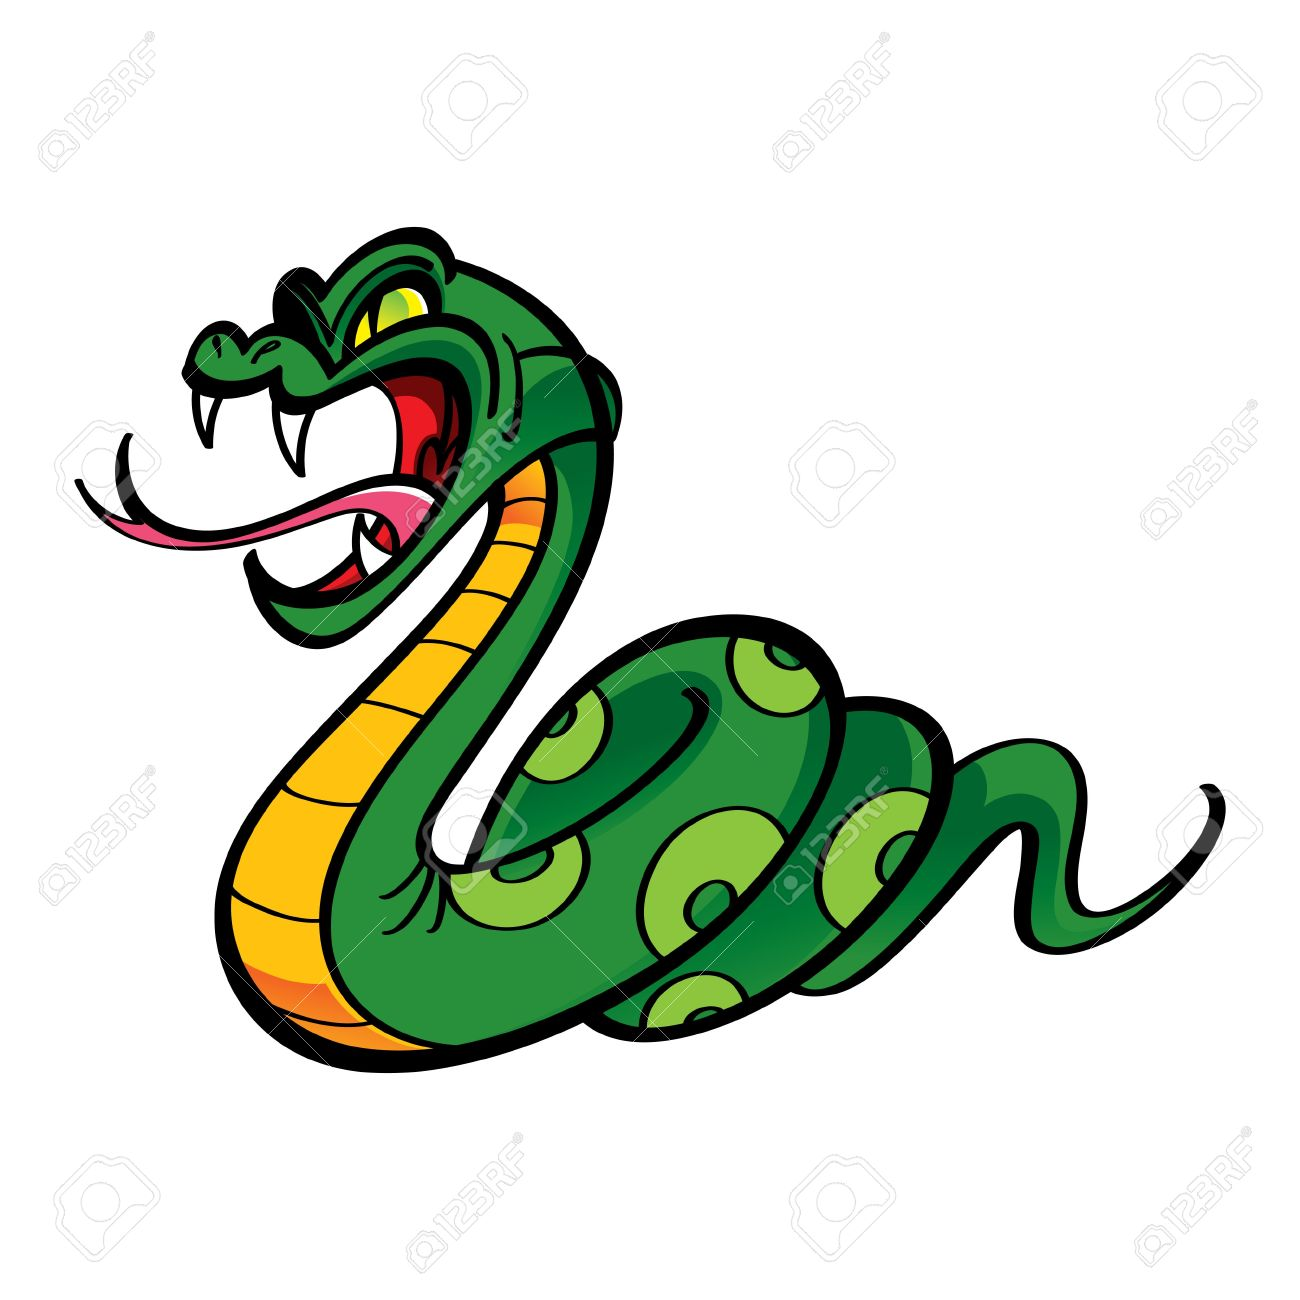 Angry Snake Bite Poison Royalty Free Cliparts, Vectors, And Stock.